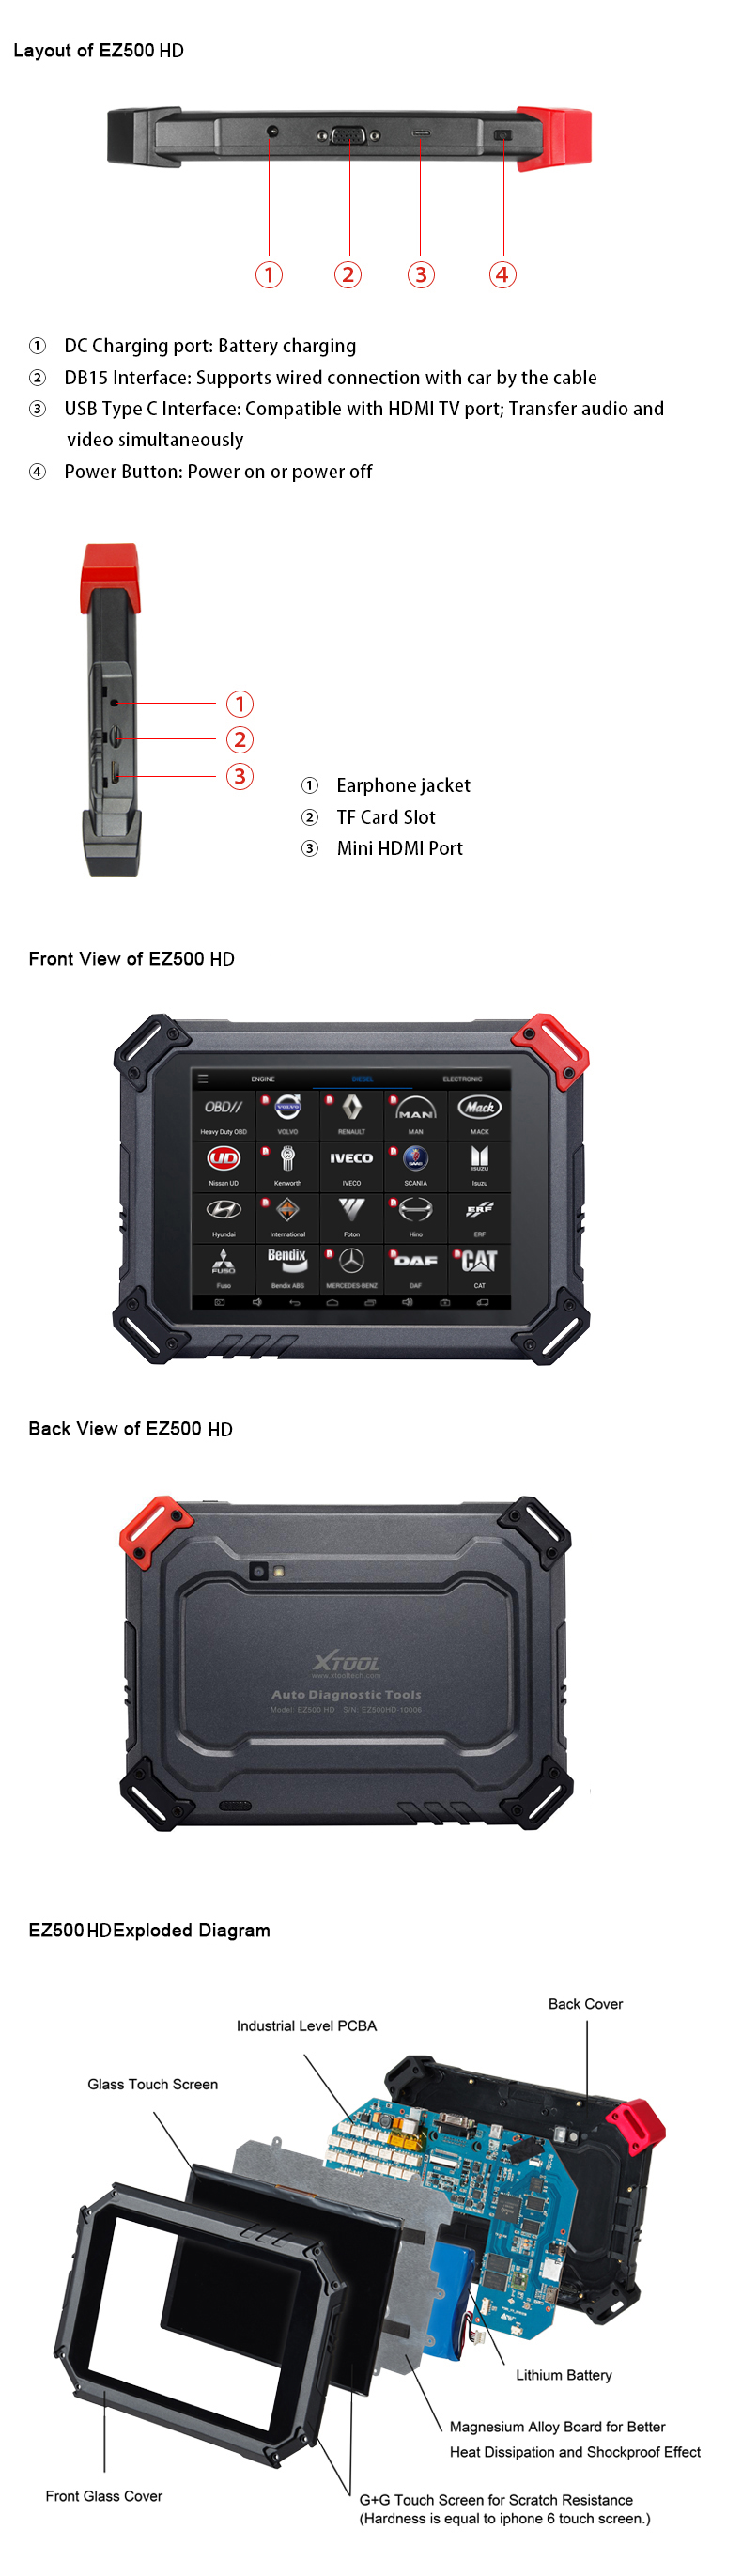 XTOOL EZ500HD Hardware Details